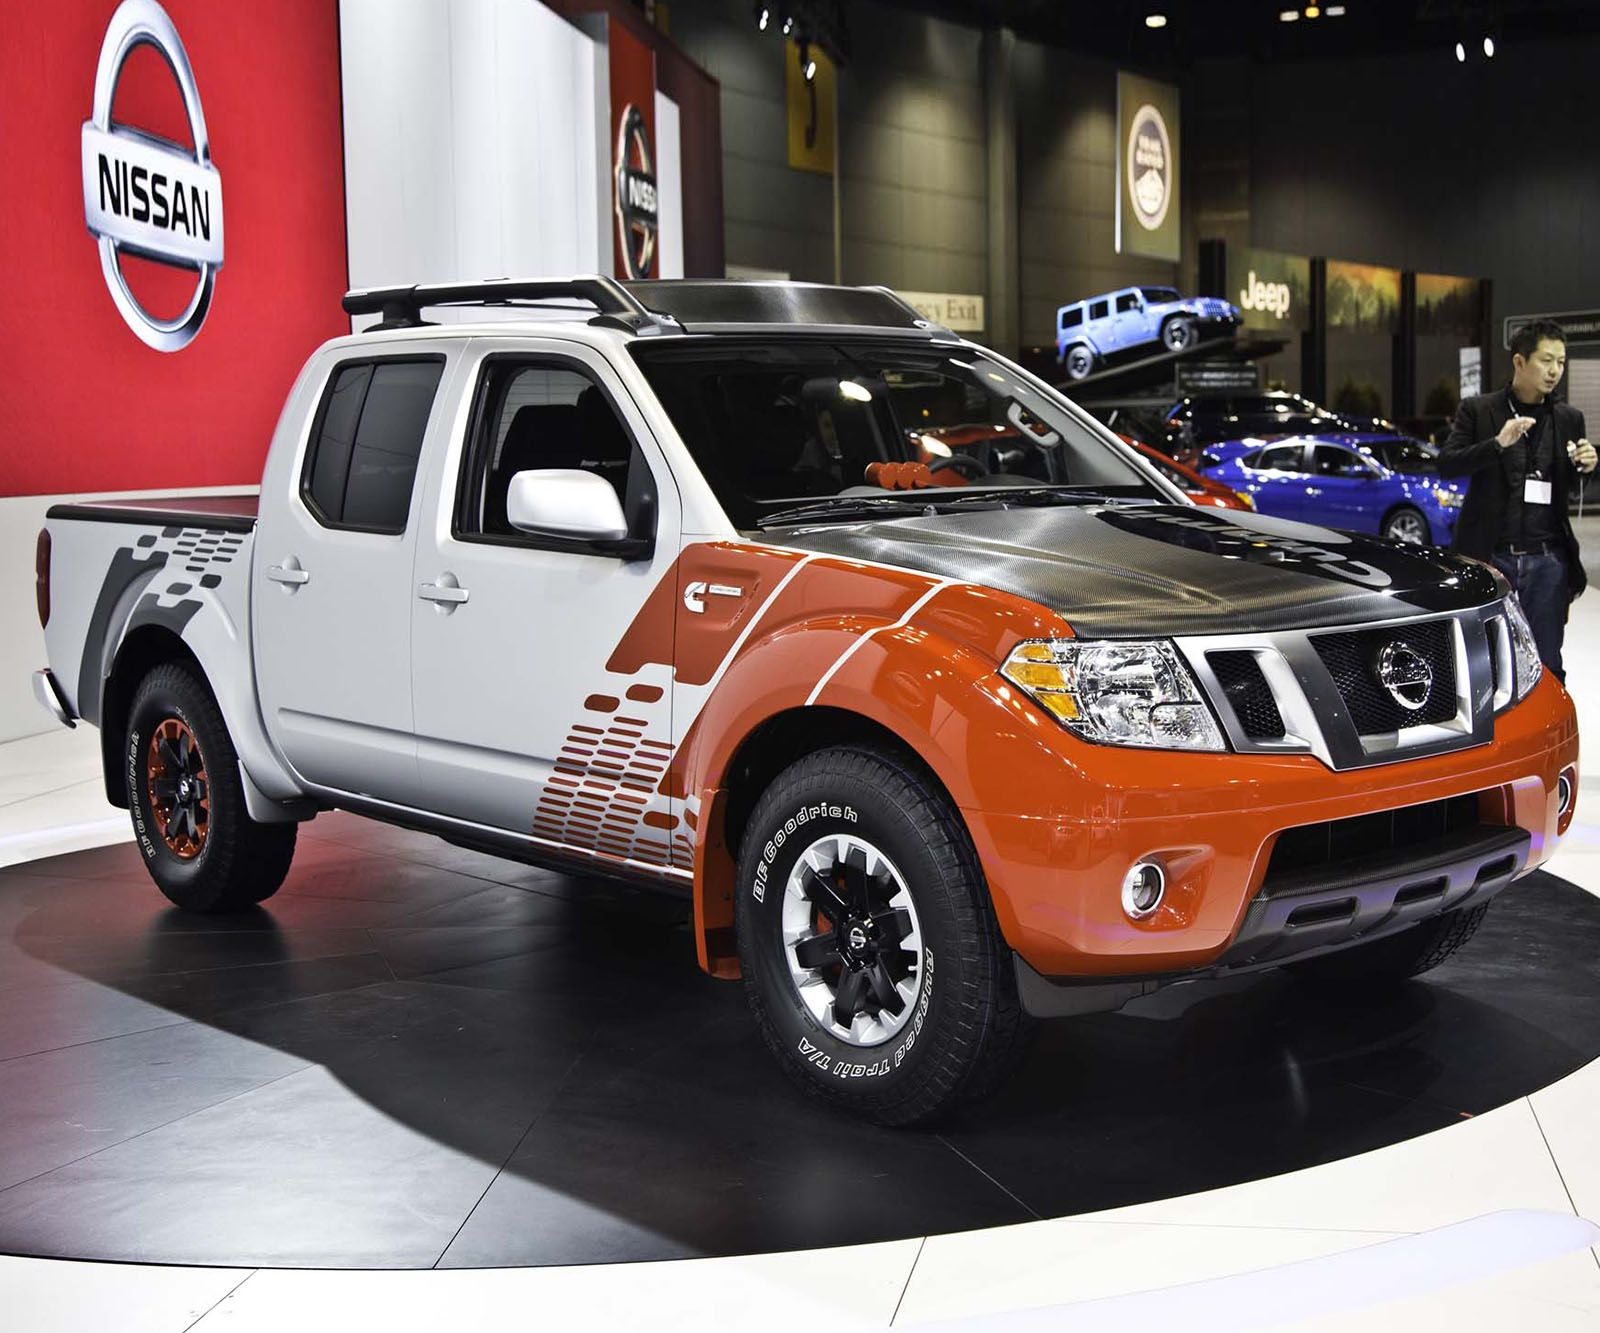 2017 Nissan Frontier Sel Mpg Release Date Interior News The